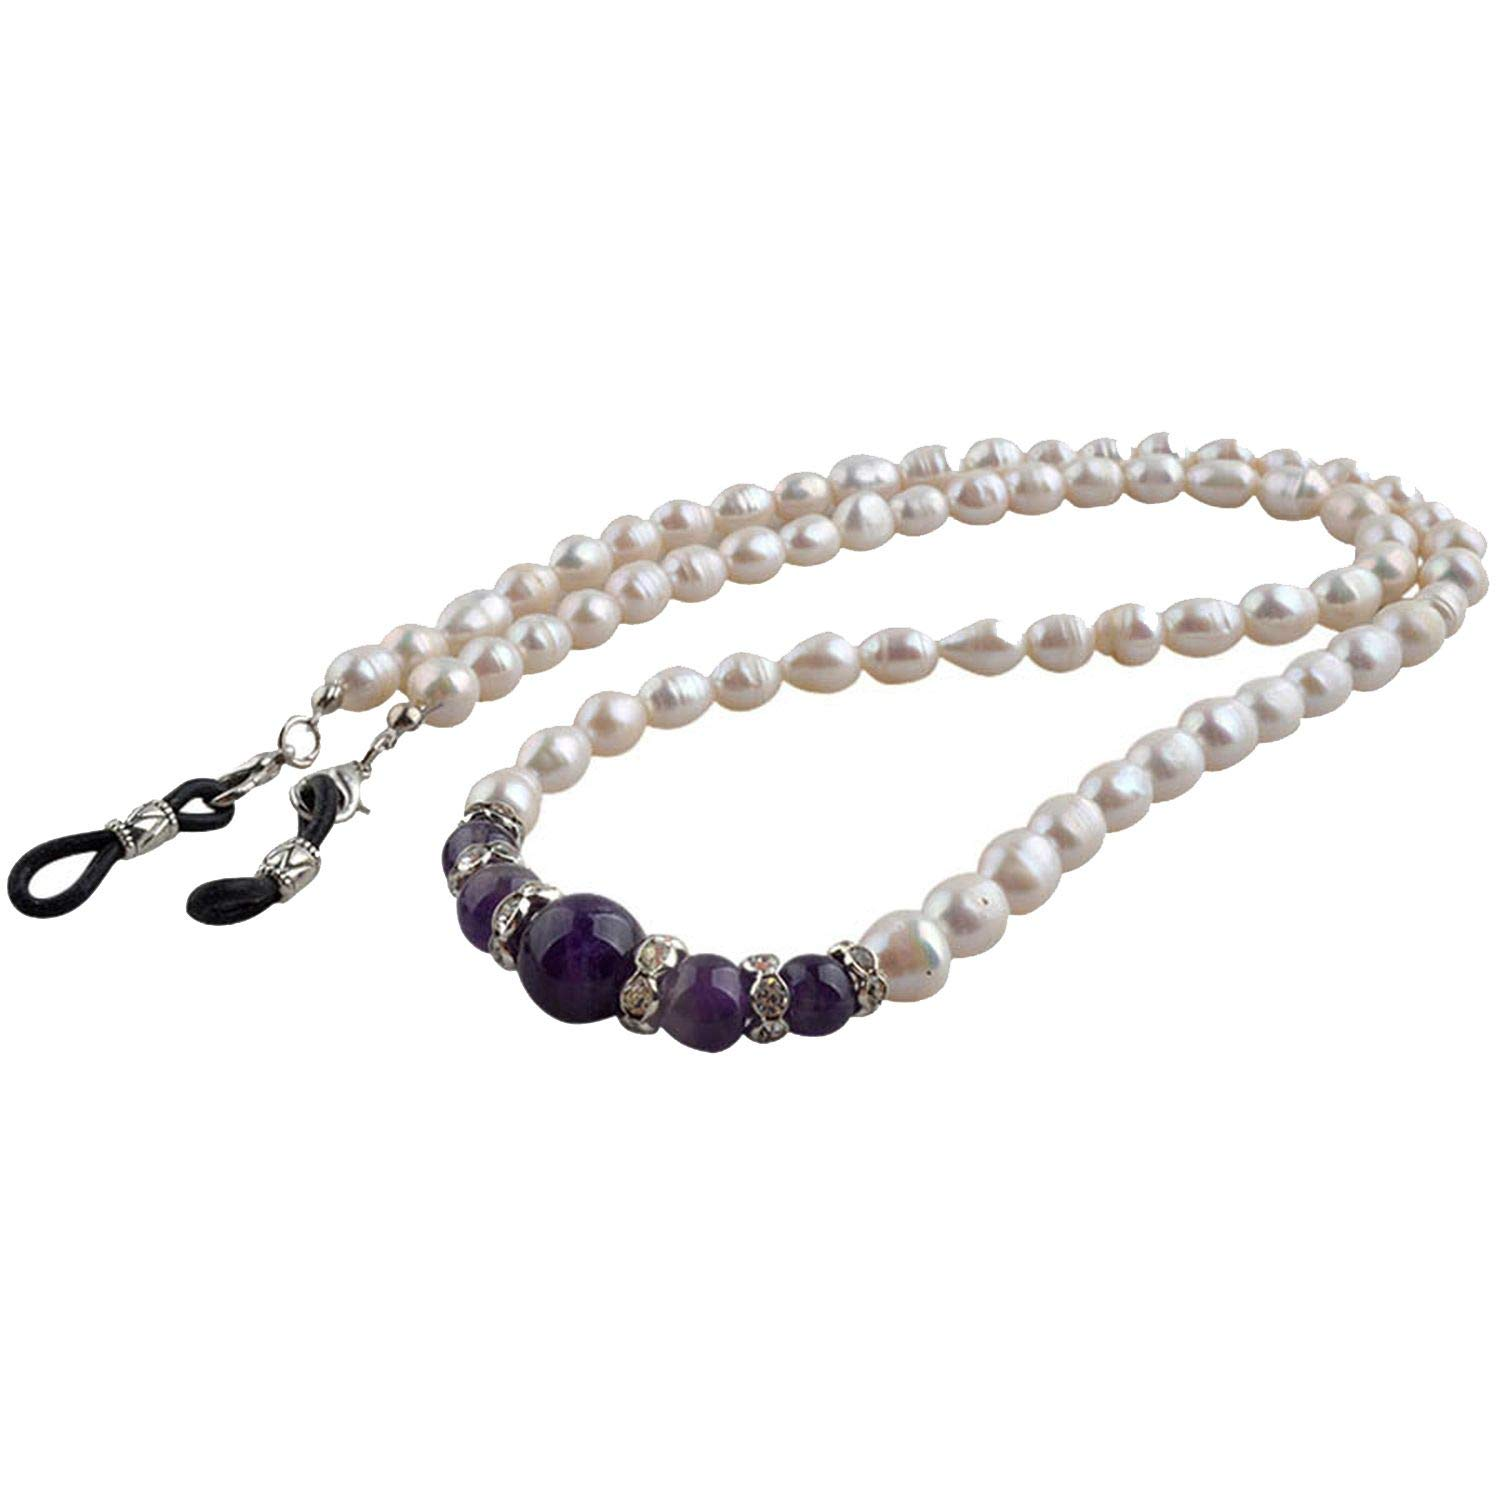 Nature Pearl Sunglasses Eyewear Cord Real Pearl Reading Glass Neck Strap Eyeglass Holder Accessories,Purple by RHYS DOBSON